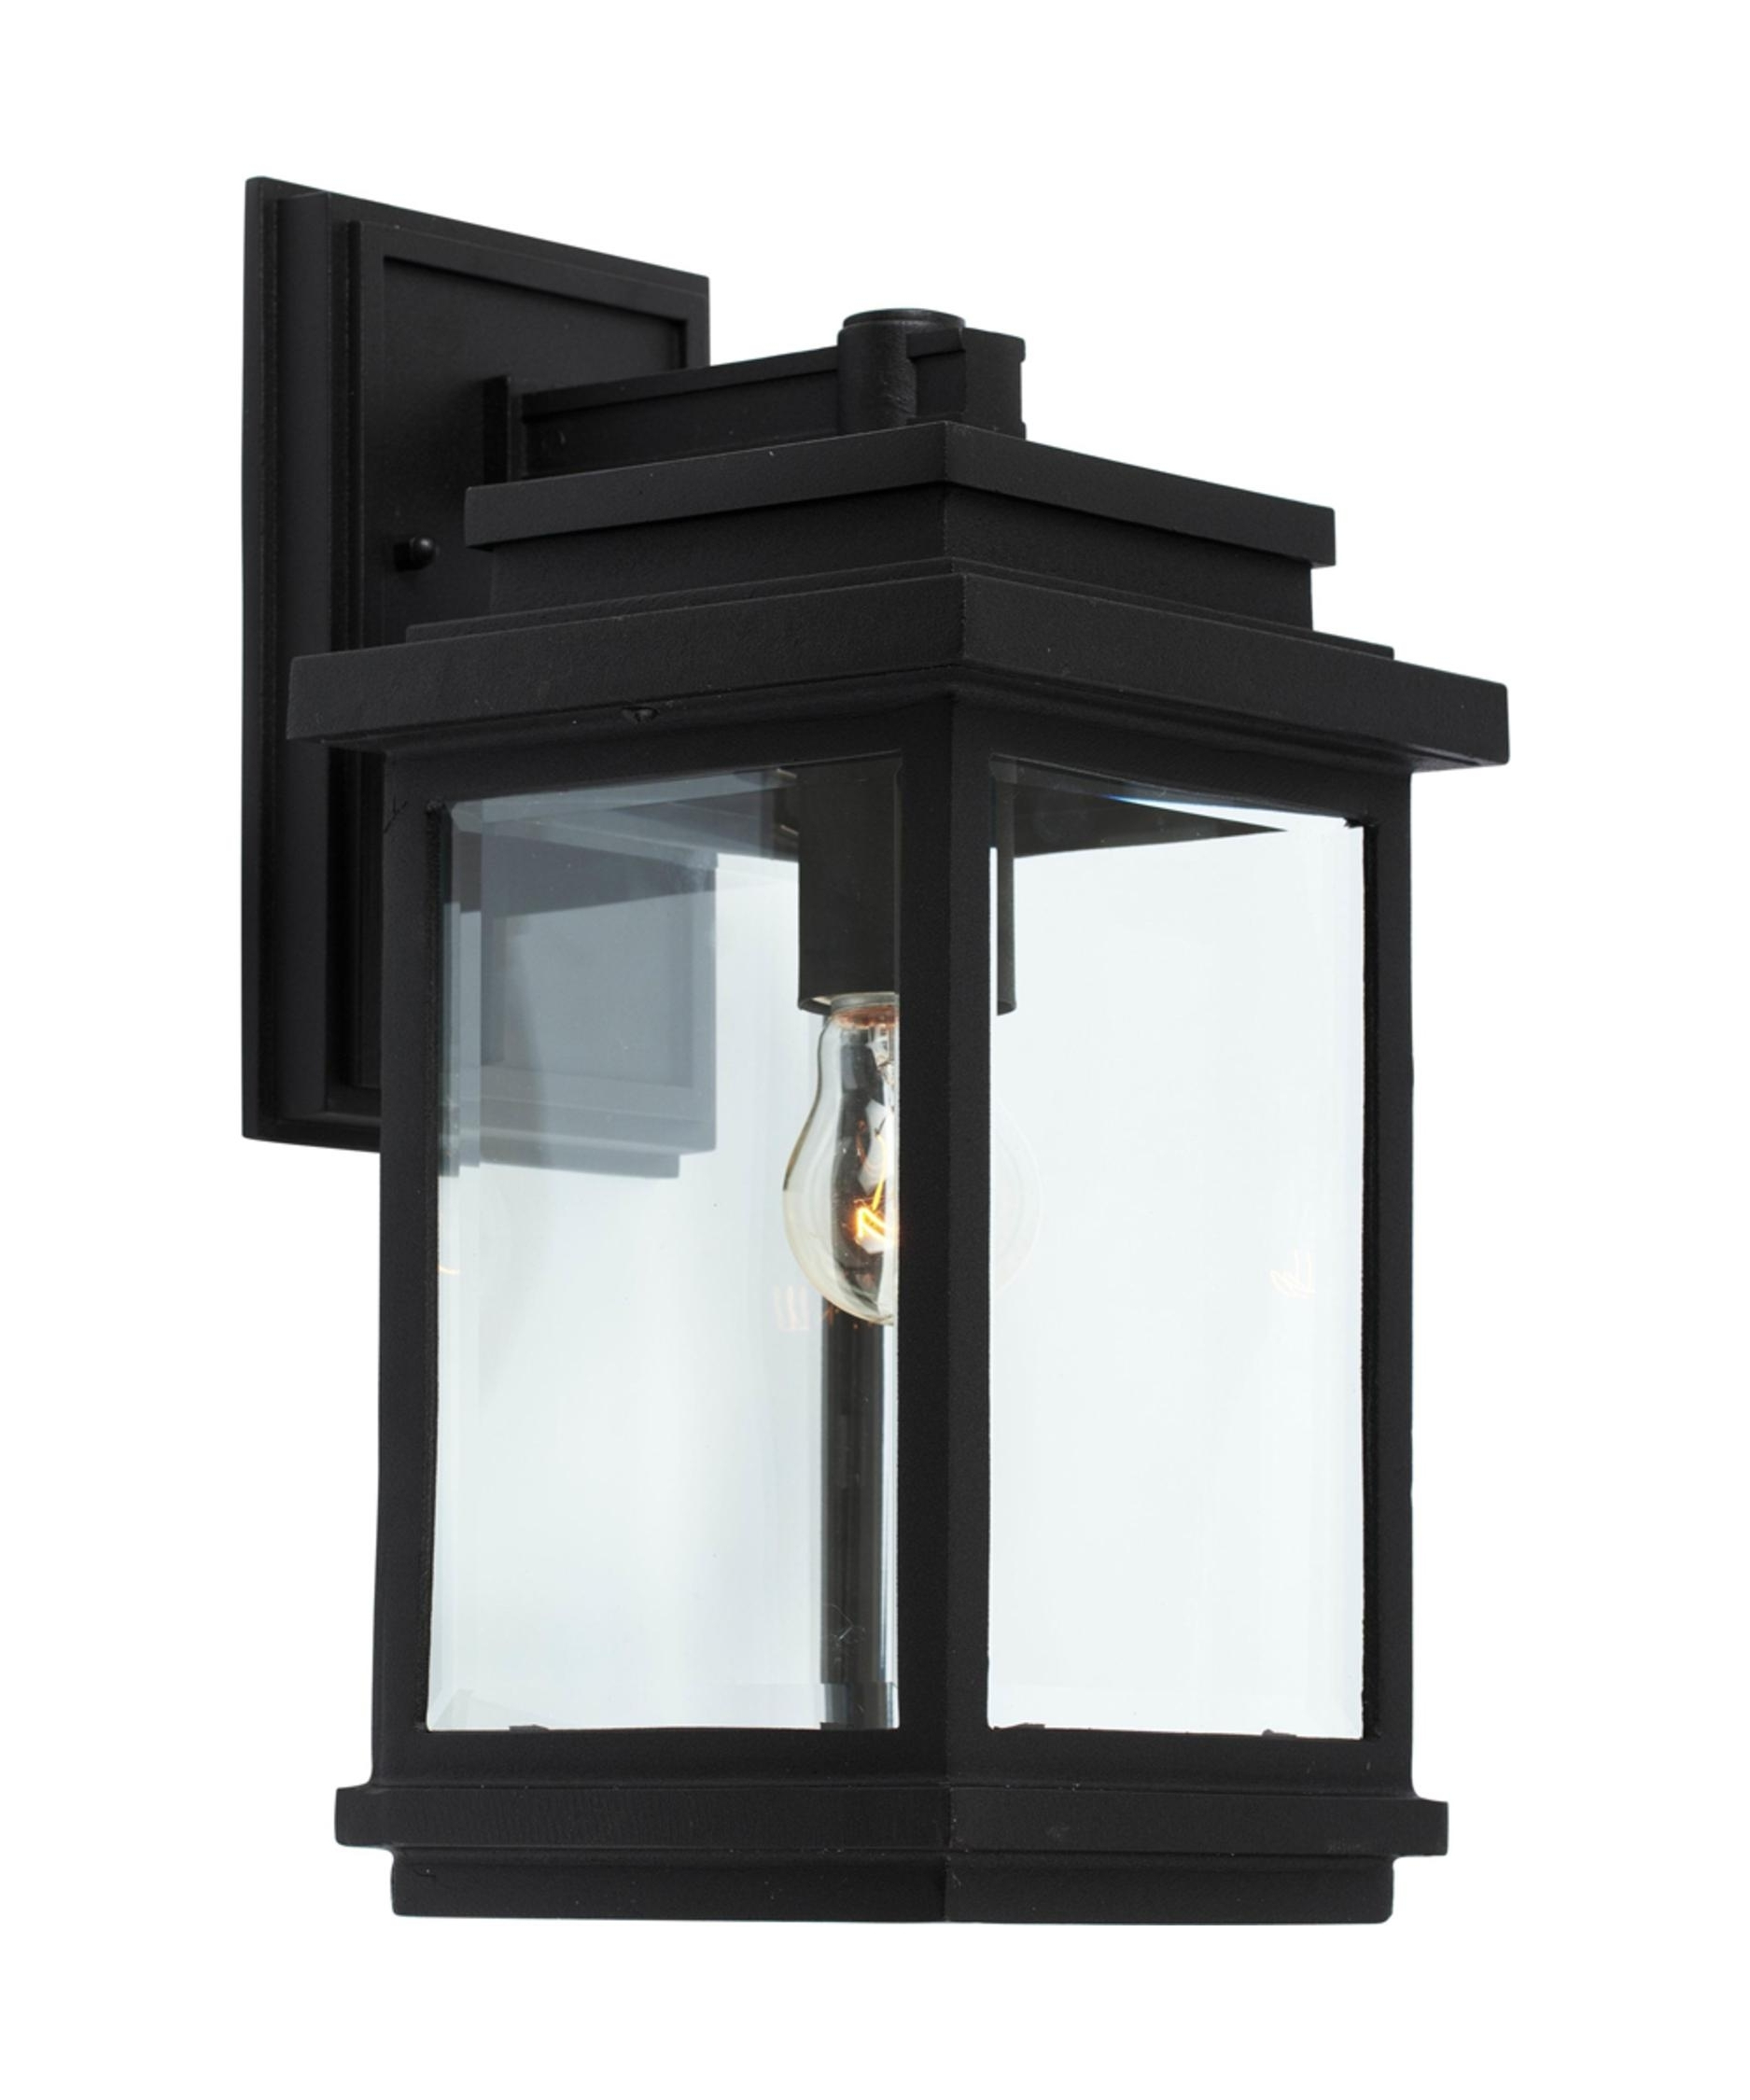 Artcraft Ac8290 Fremont 7 Inch Wide 1 Light Outdoor Wall Light Pertaining To Popular Black Outdoor Wall Lighting (Gallery 3 of 20)